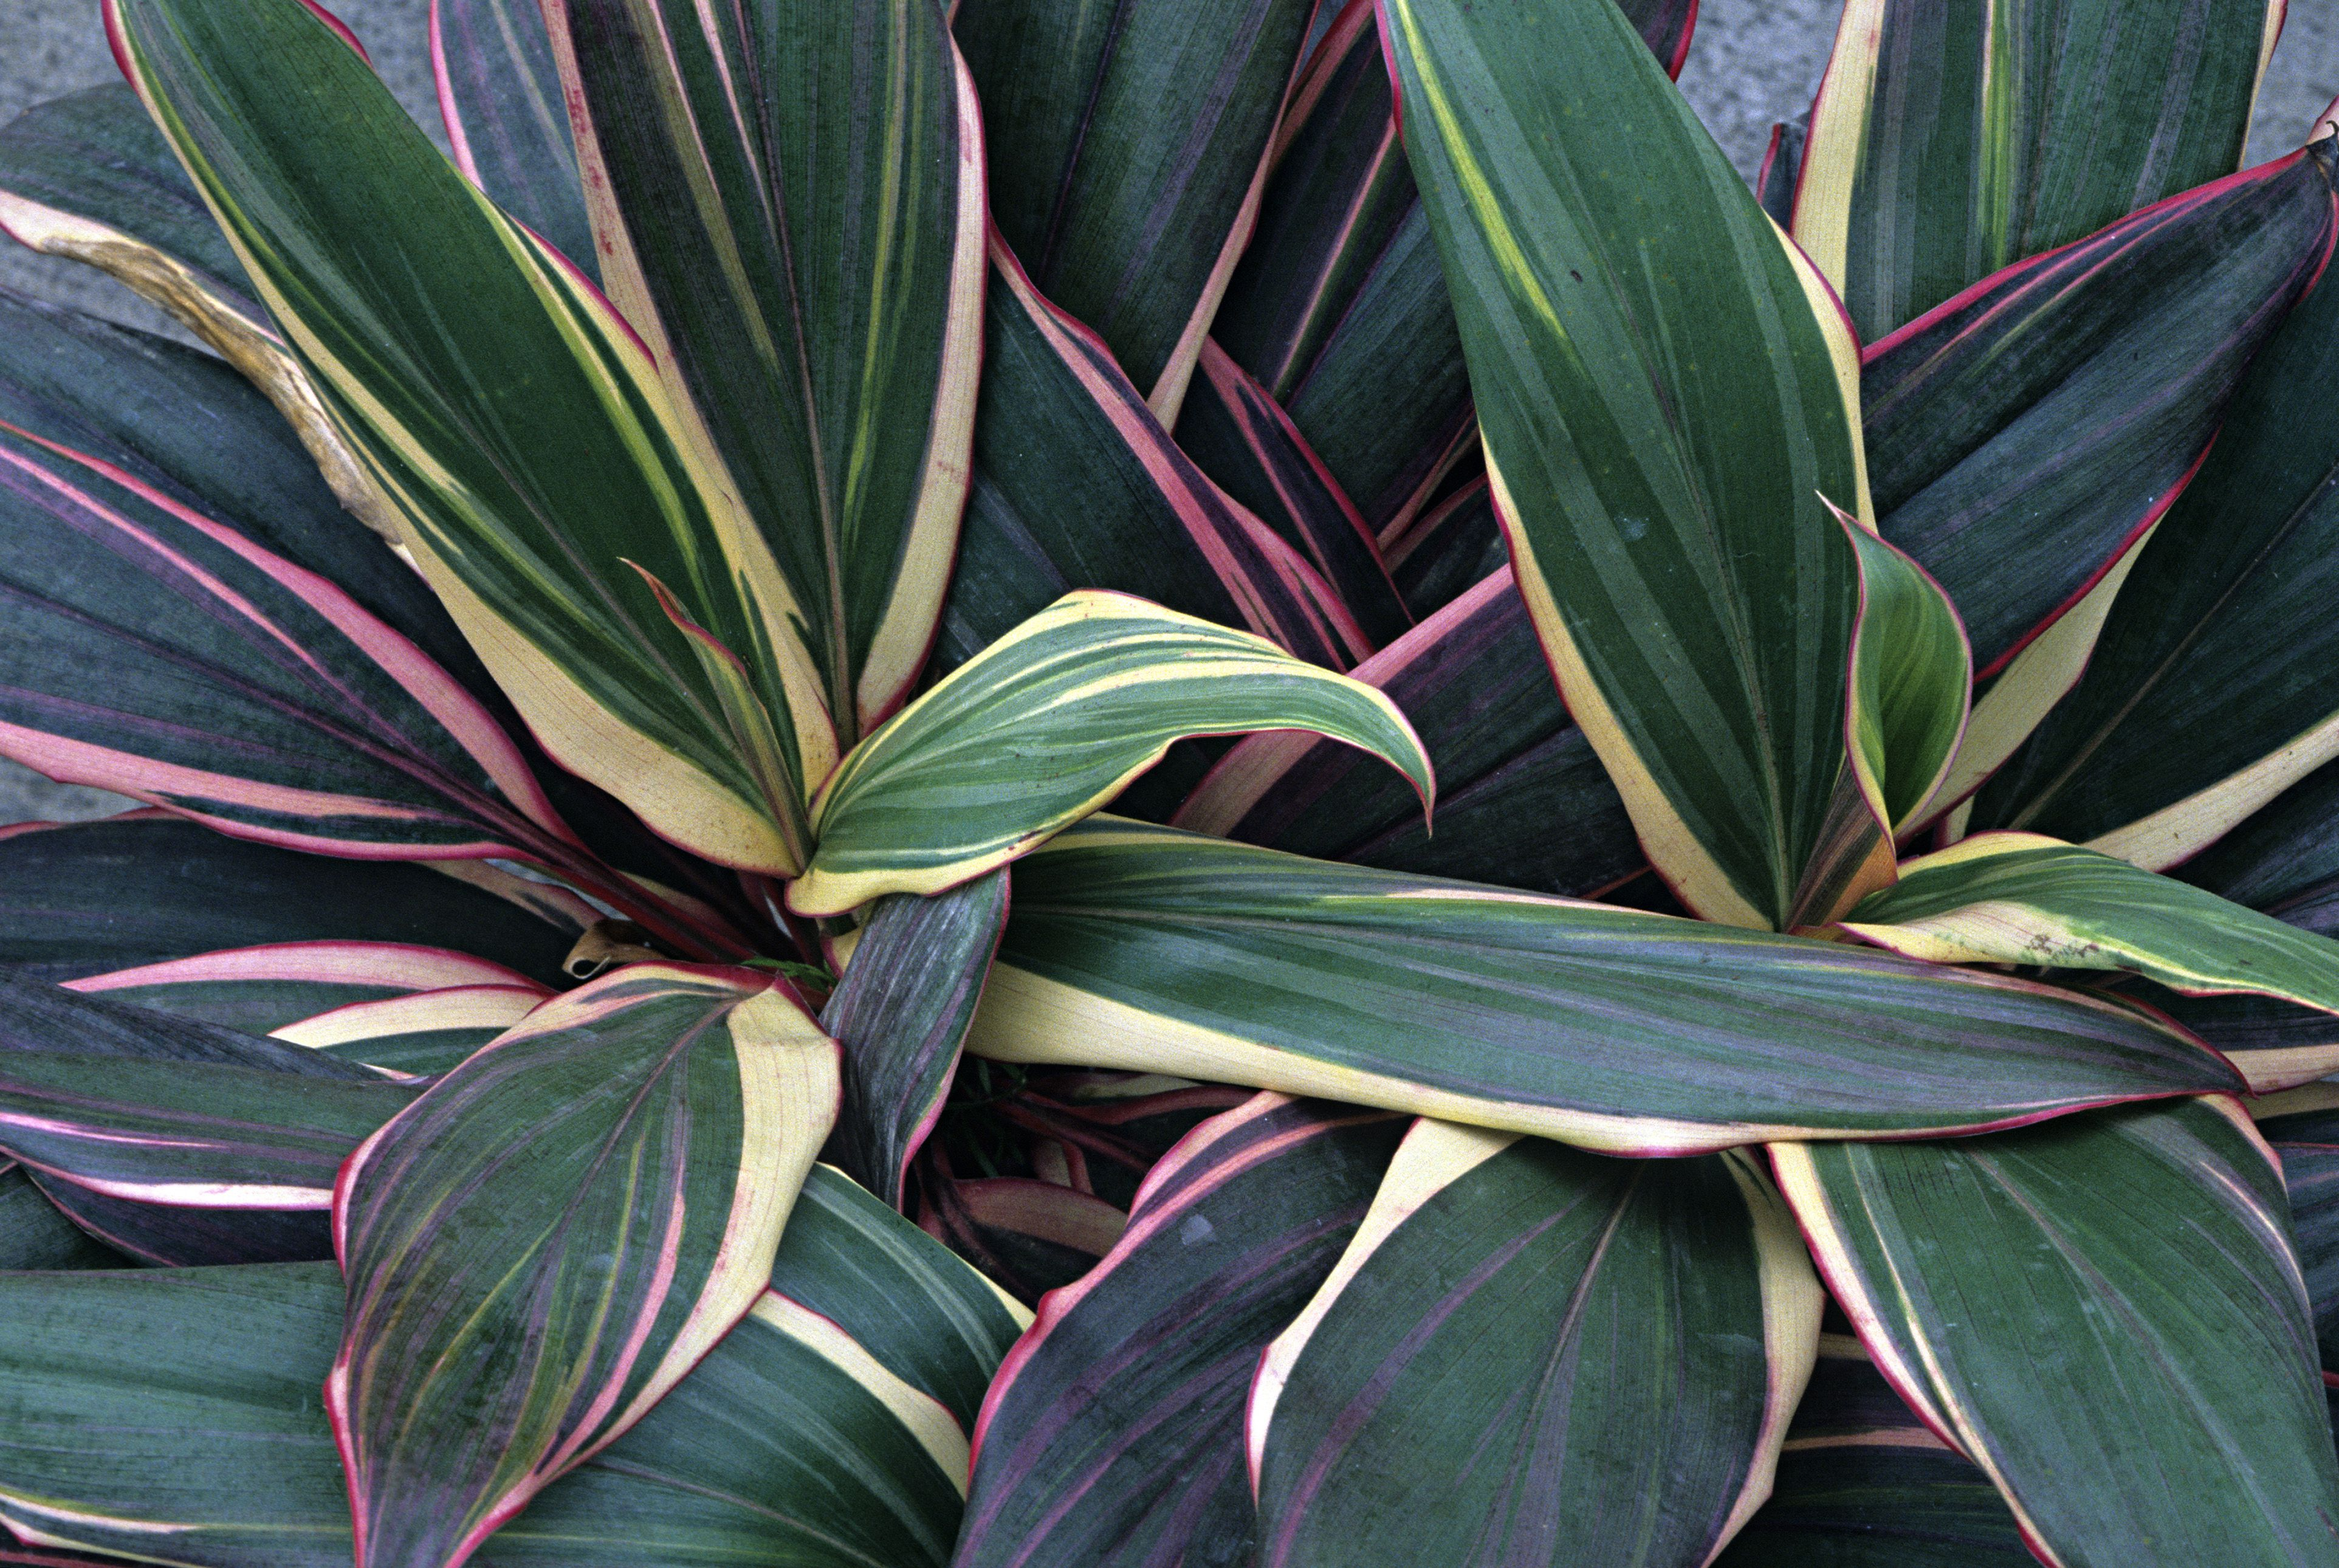 Best plants for bathroom - What Is The Best Way To Grow Cordyline Indoors